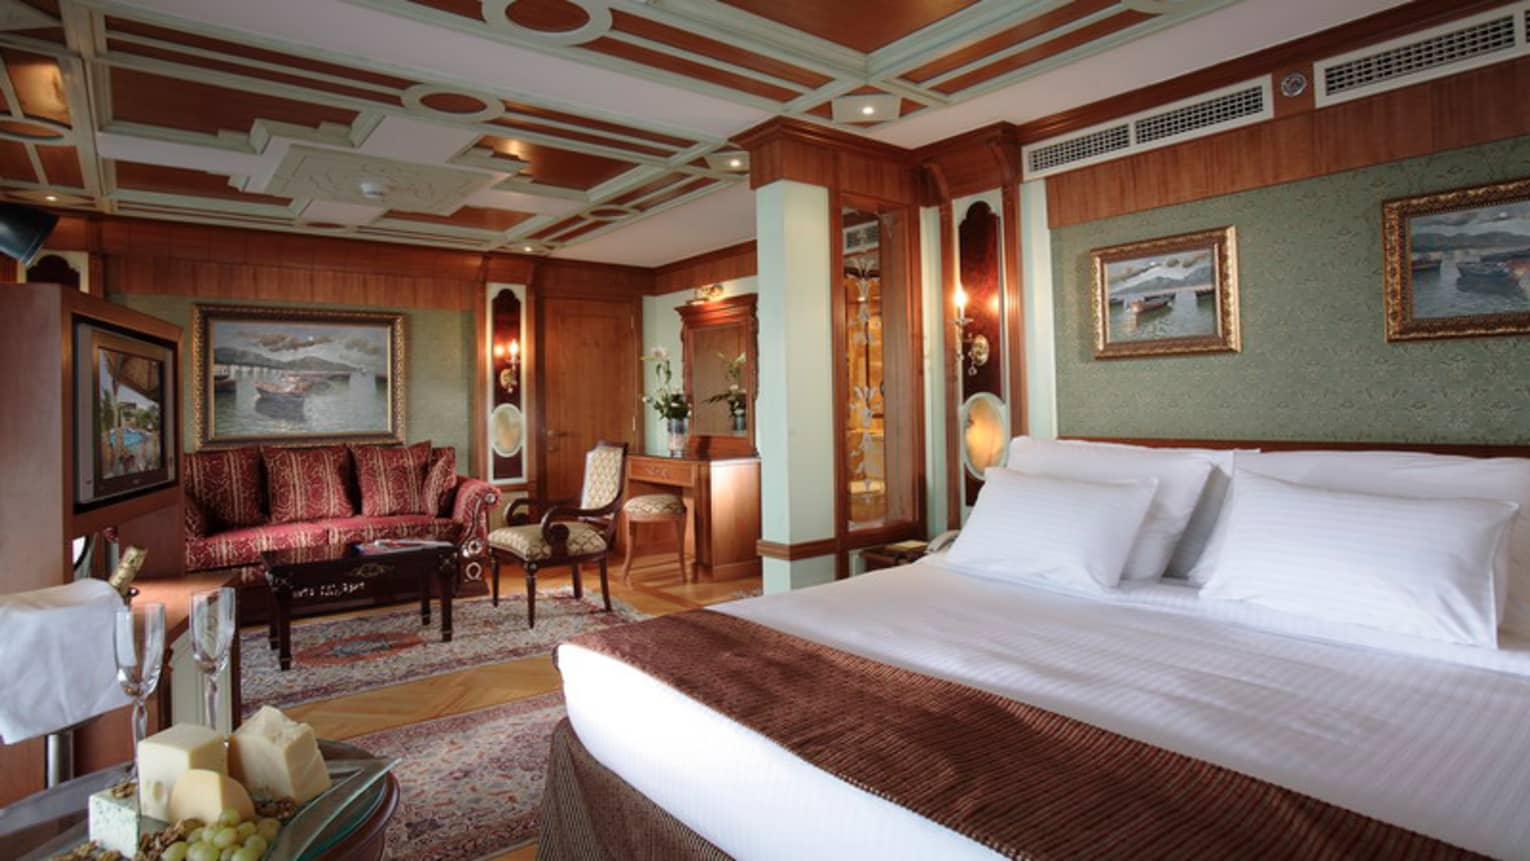 Royal Suite bedroom, wood-panelled walls, paintings with gold frames, red sofa